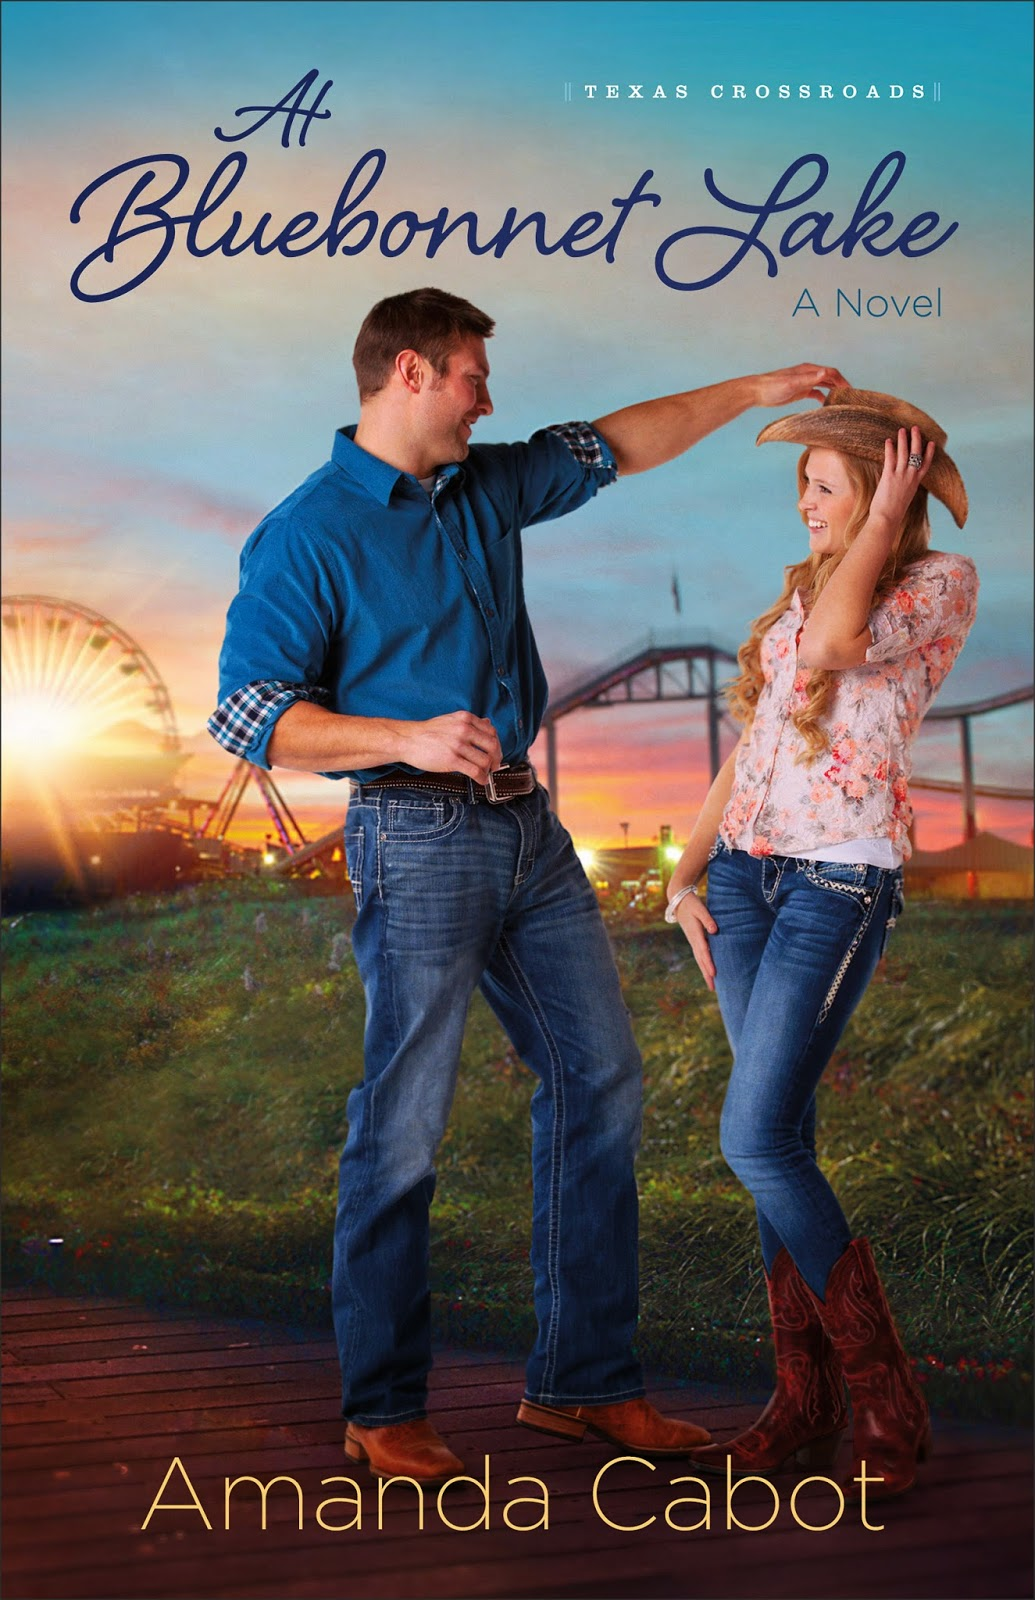 book review of At Bluebonnet Lake by Amanda Cabot (Revell) by papertapepins